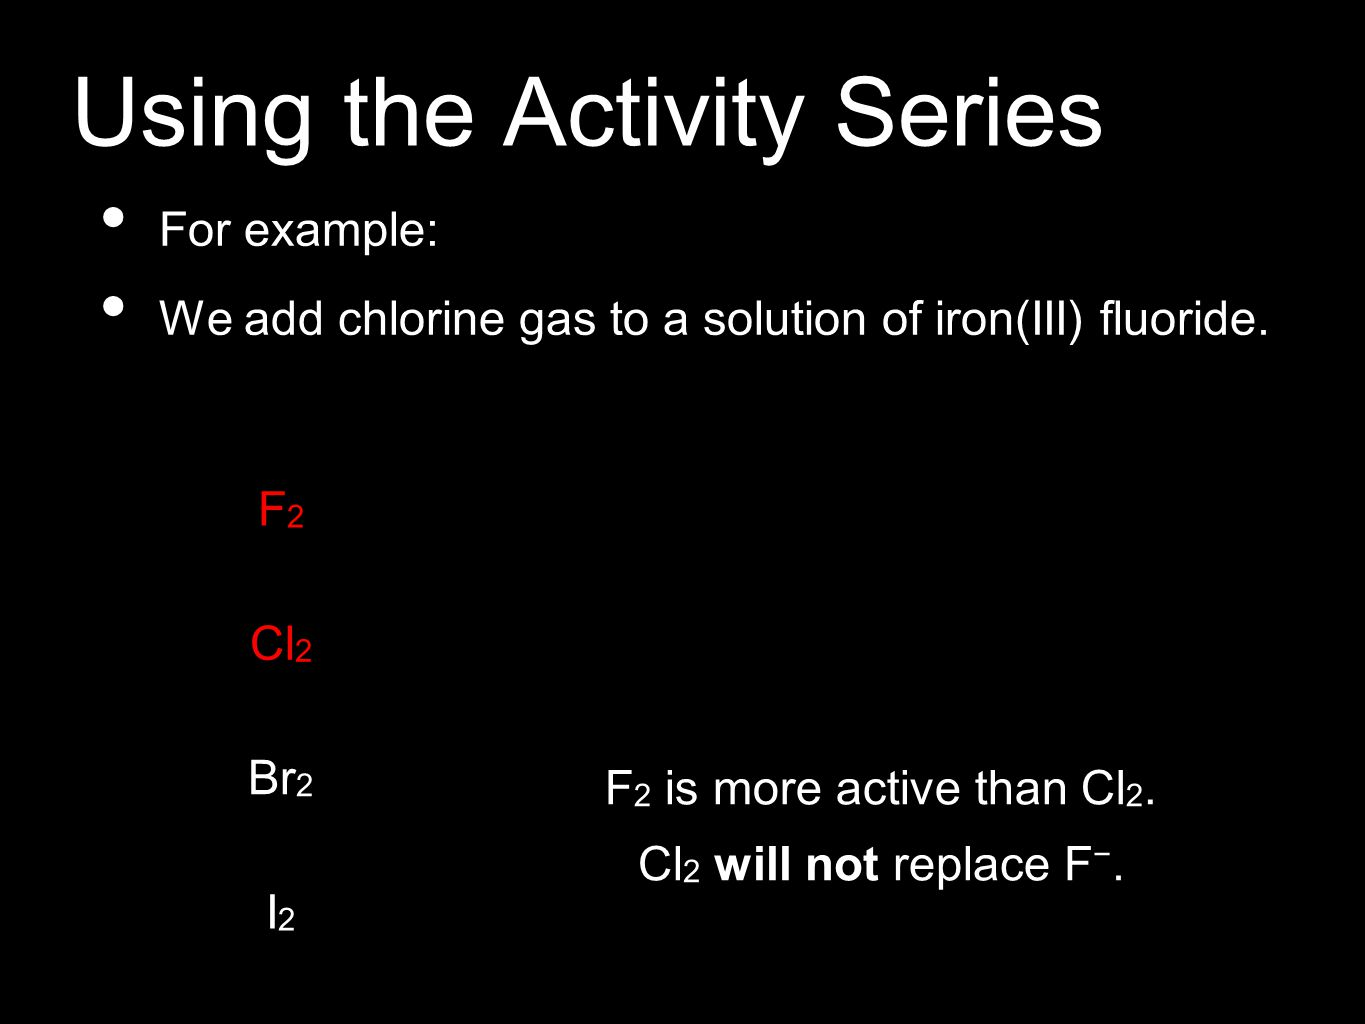 Using the Activity Series For example: We add chlorine gas to a solution of iron(III) fluoride. Cl 2 will not replace F −. F2F2 Cl 2 Br 2 I2I2 F 2 is